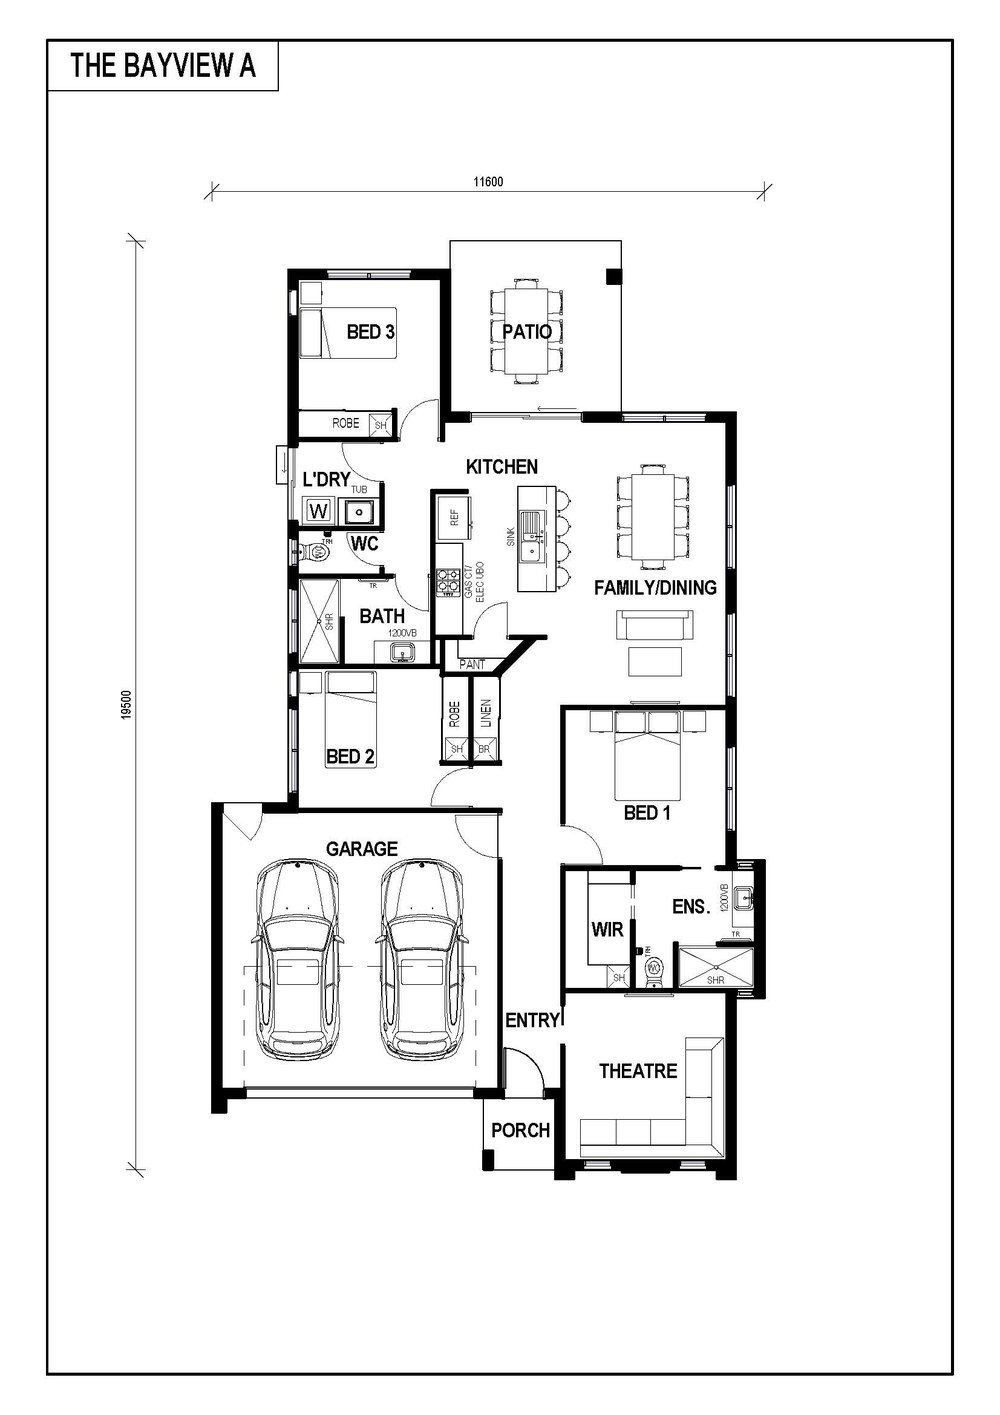 BAYVIEW A - Floor Plan.jpg